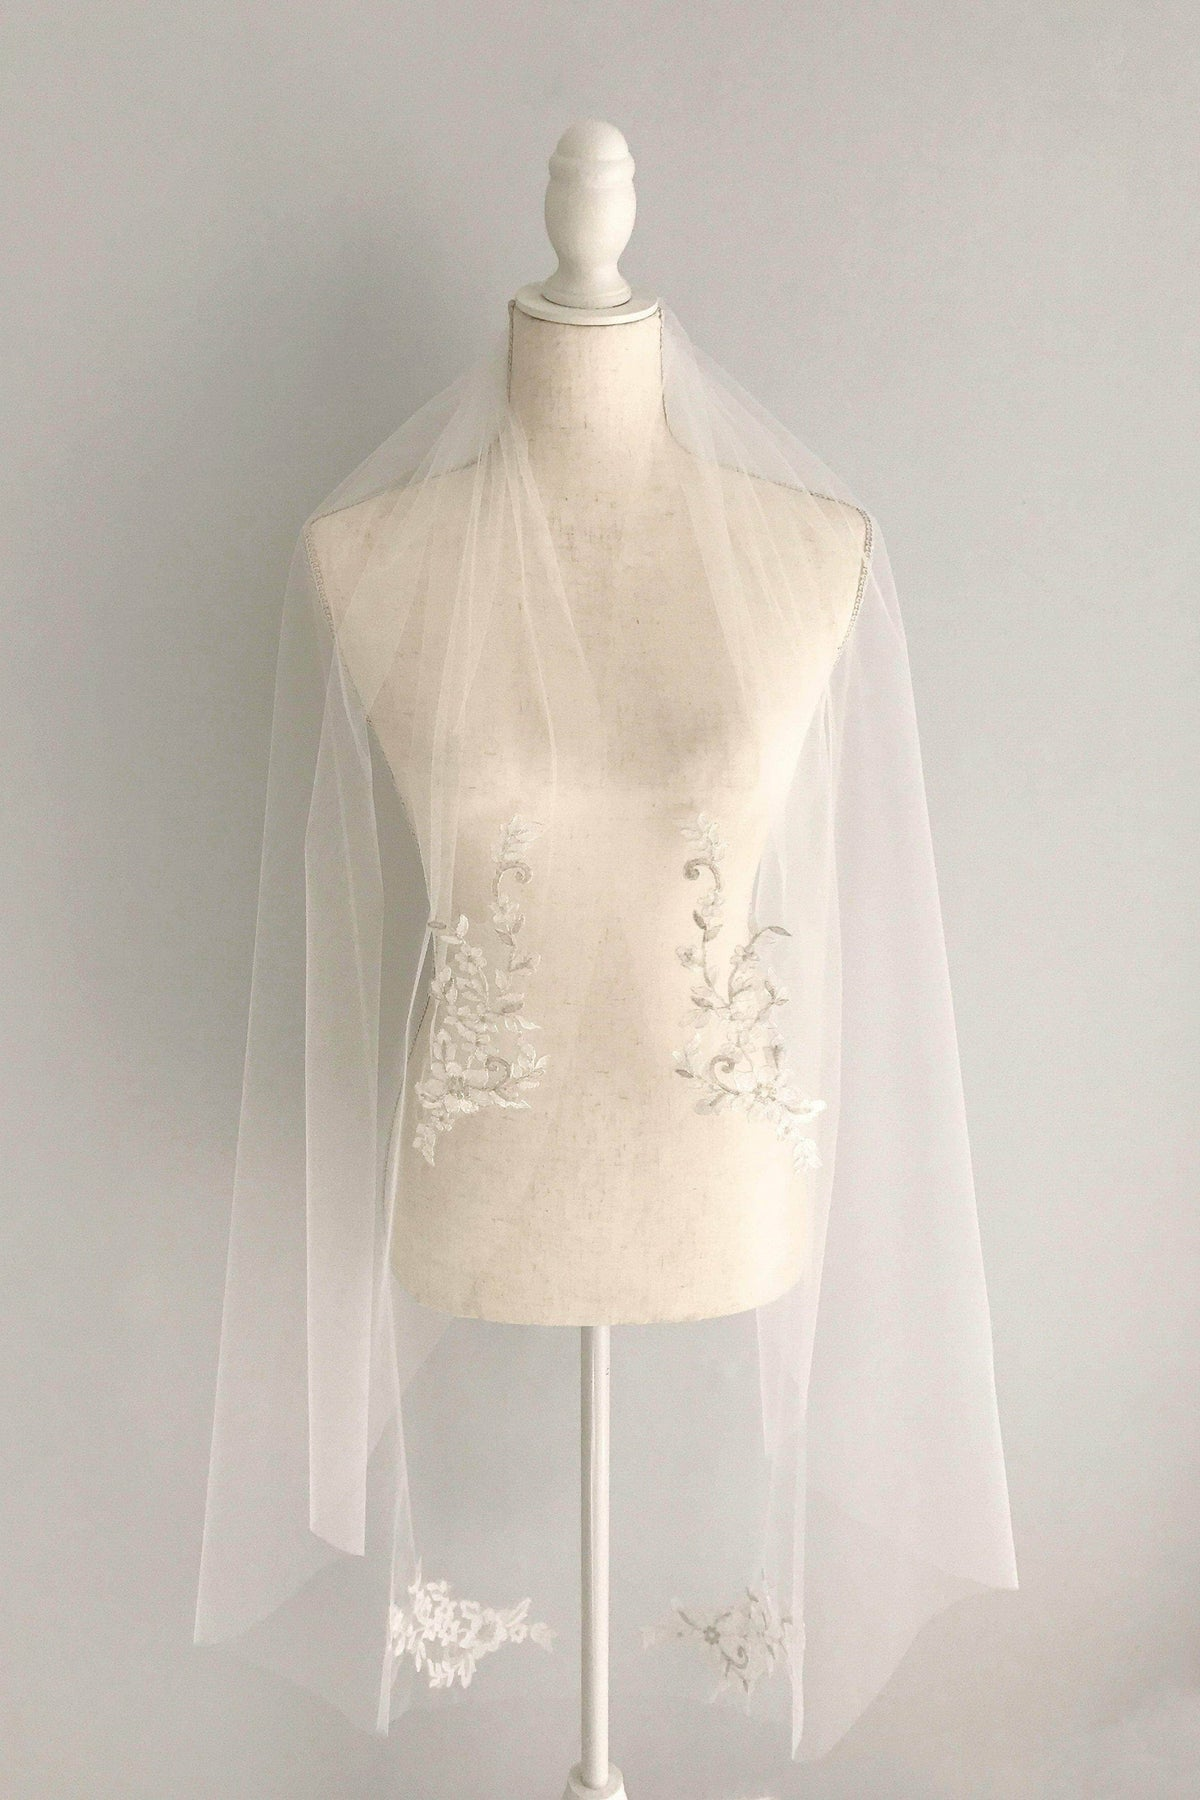 Wedding Veil Lace flower motif wedding veil - 'Paisley'